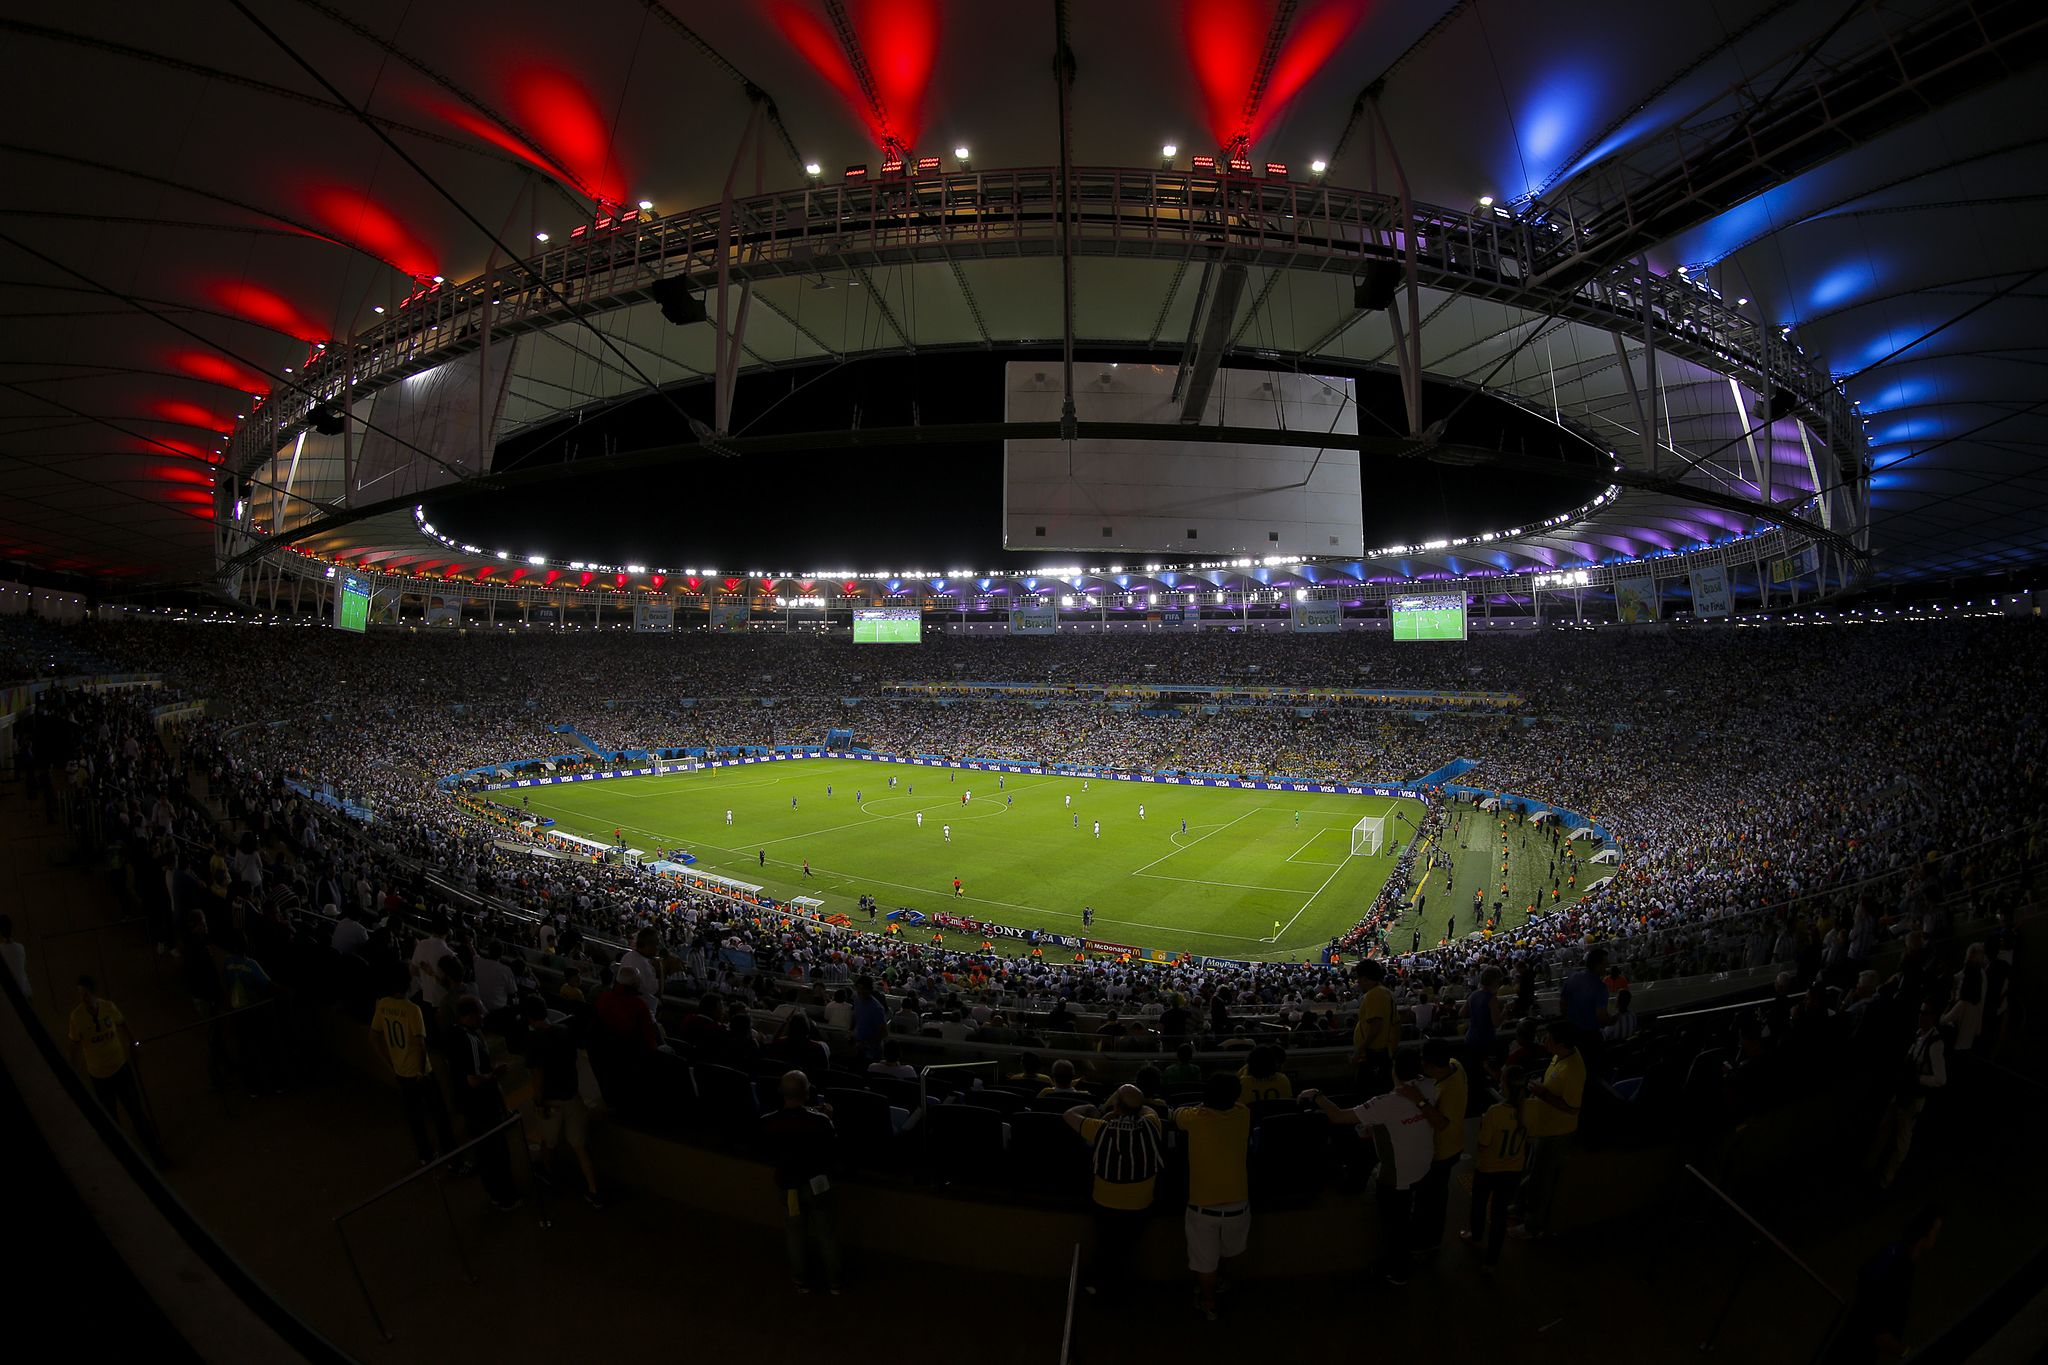 e385160c83e One billion people watched the 2014 World Cup final in Brazil, roughly 10  times more than the Super Bowl. (Photo: Danilo Borges/Wikimedia Commons)